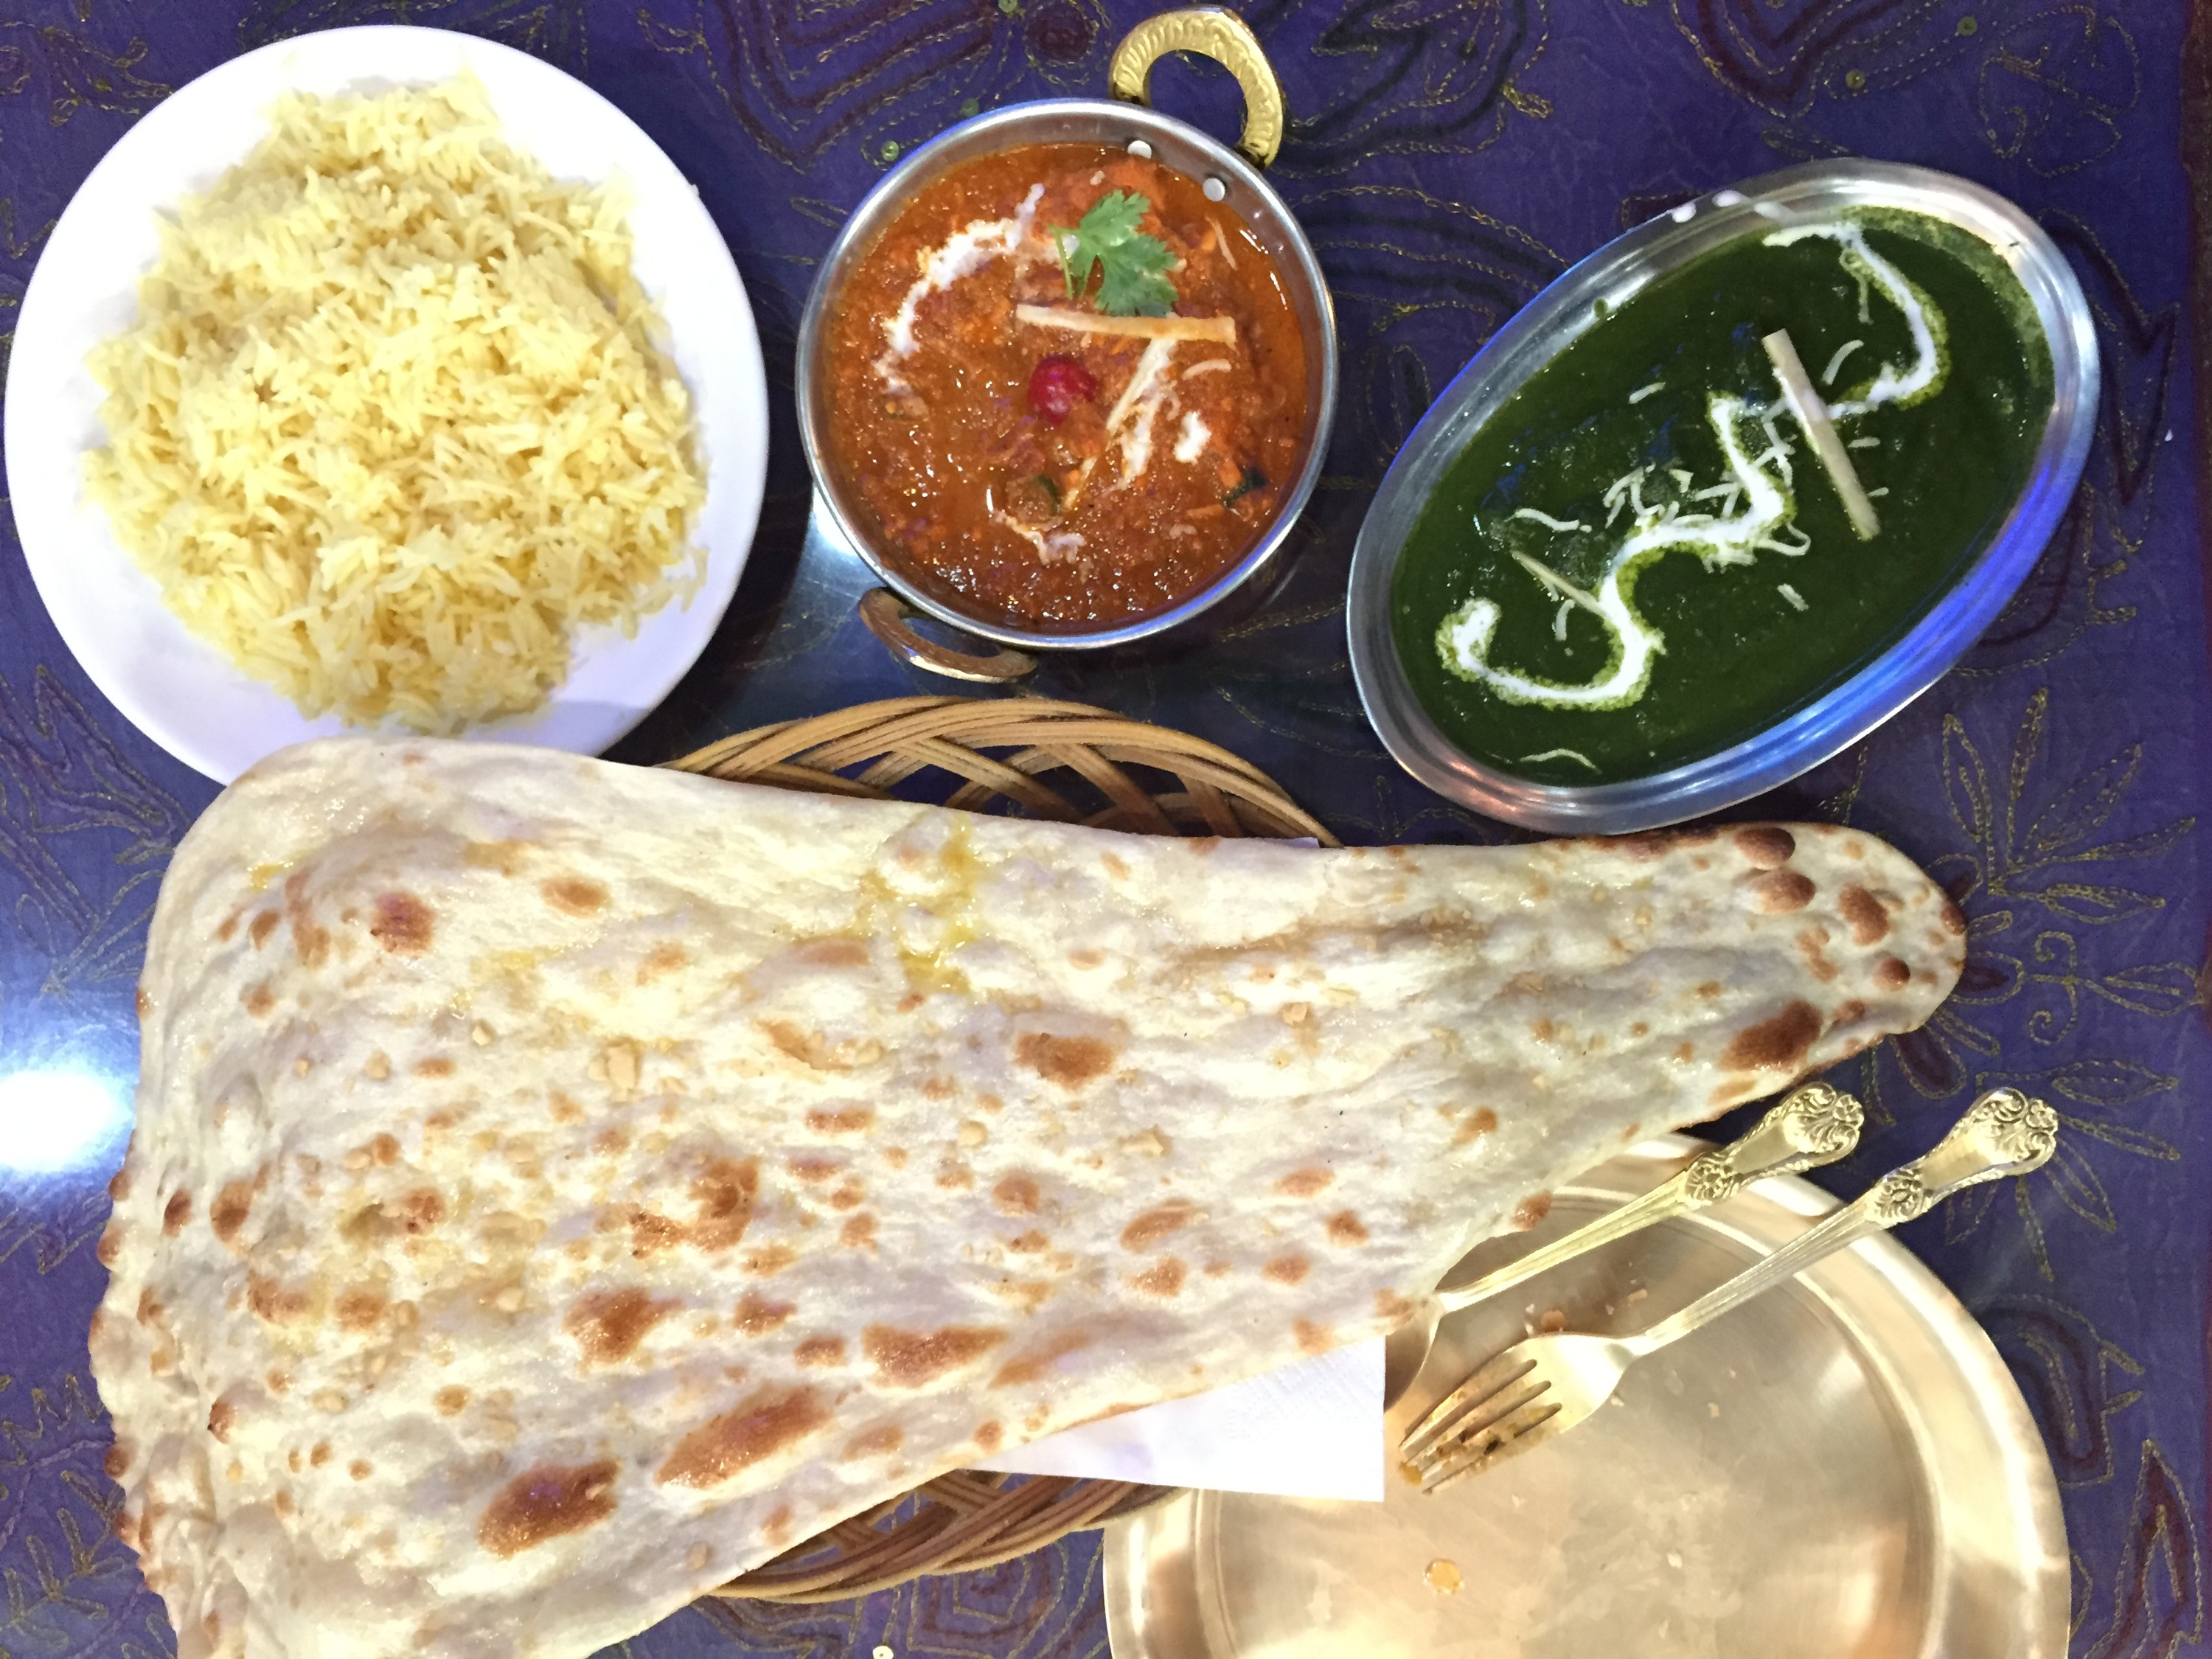 Palak paneer and masala at Everest